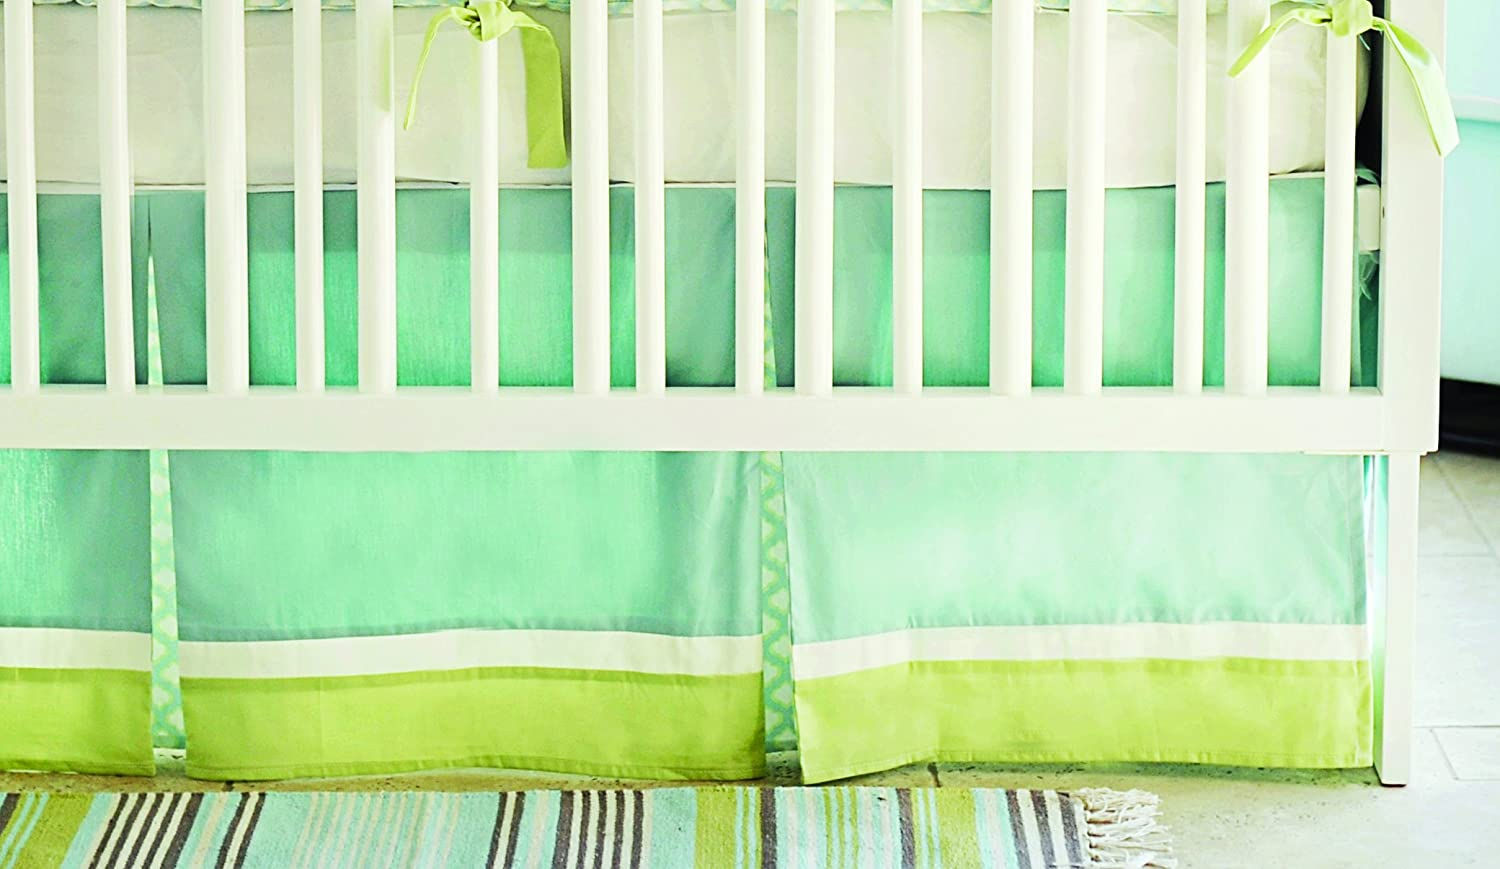 New Arrivals Sprout Crib 2 Piece Crib Bedding Set, Green by New Arrivals   B009YEKZGC